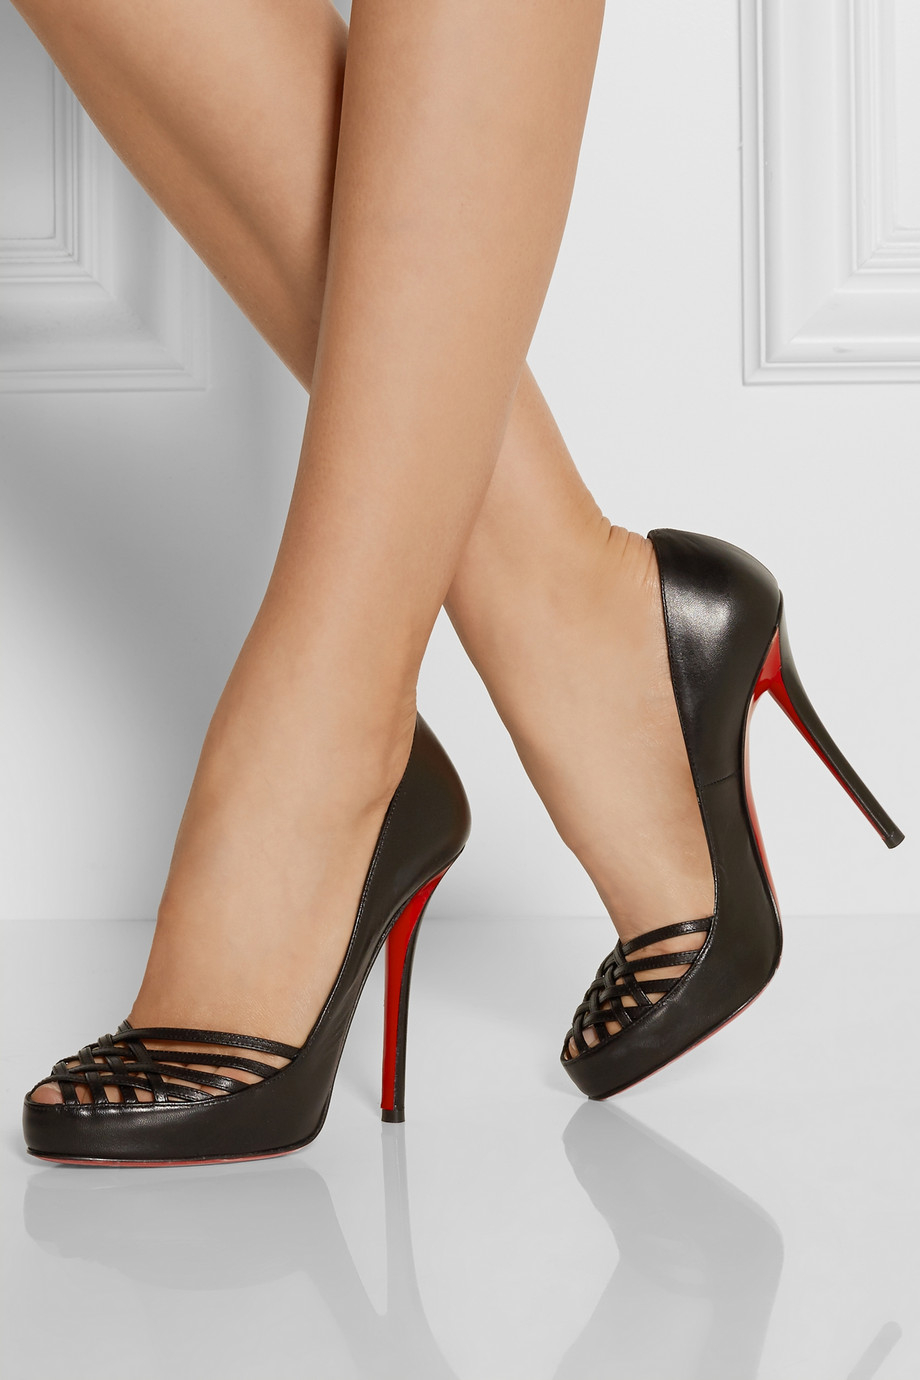 Christian Louboutin Swiftinetta 120 Leather Ankle Boots in